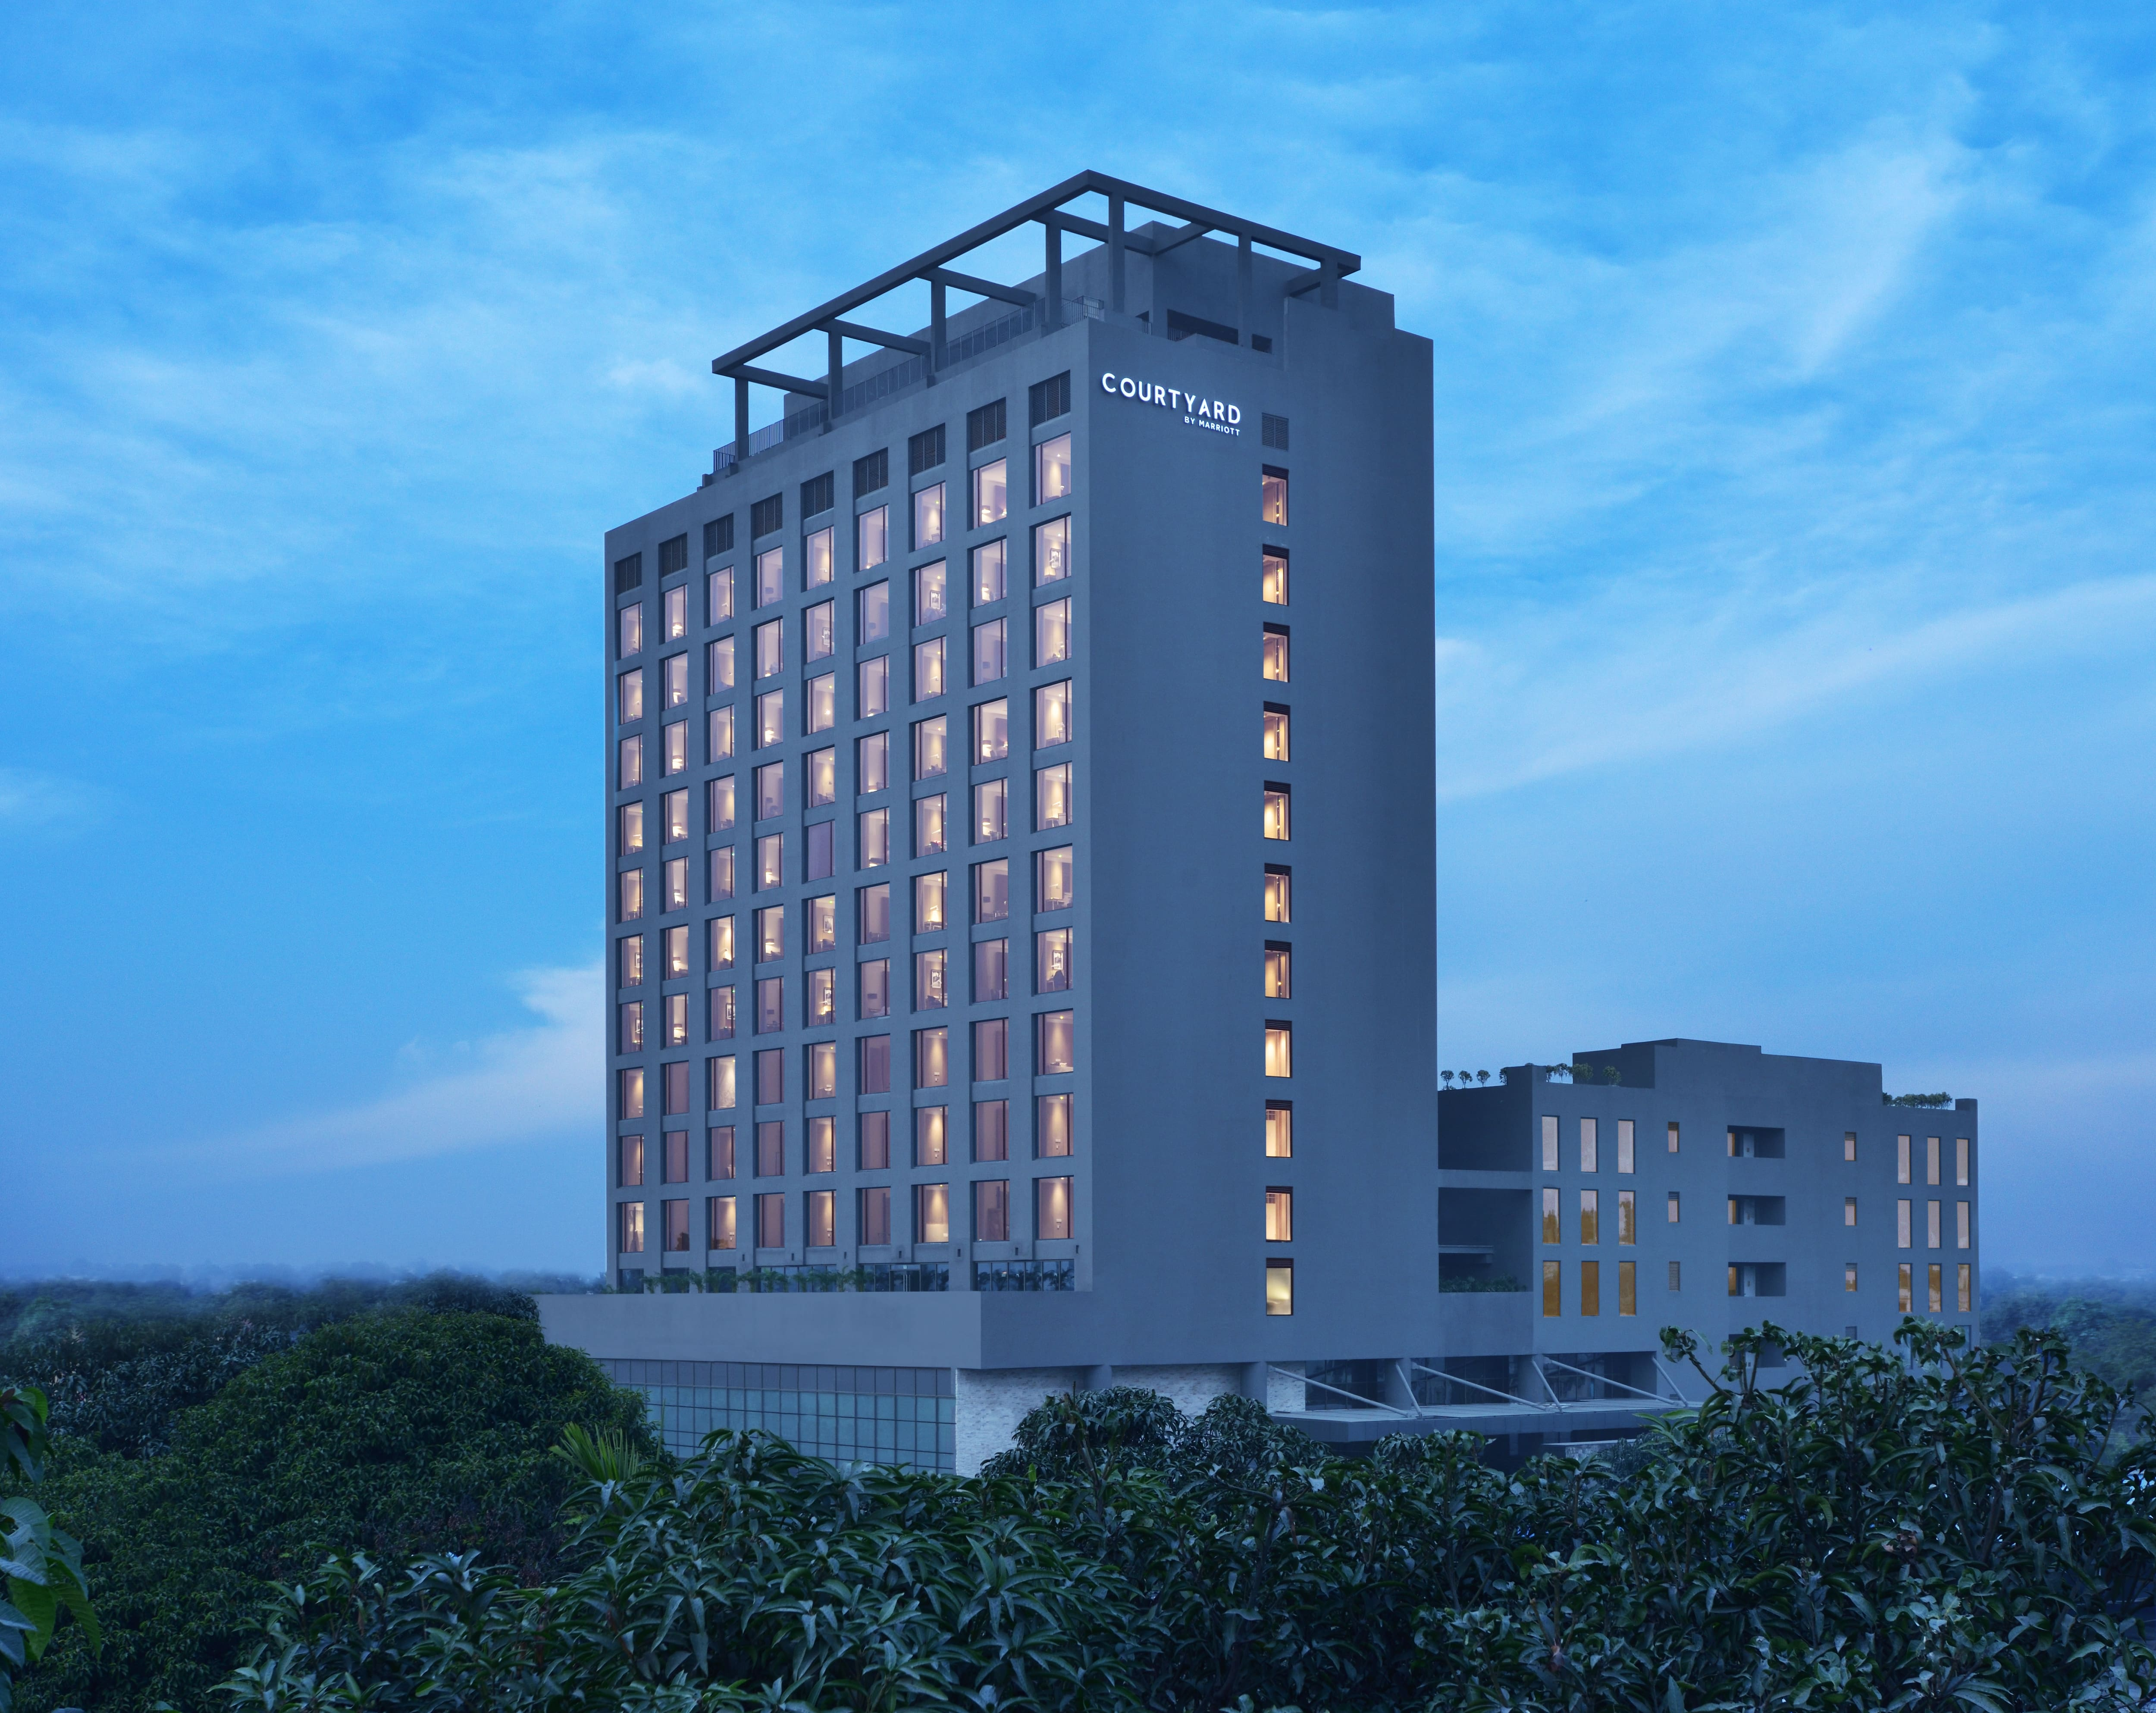 Courtyard by Marriott now in Siliguri